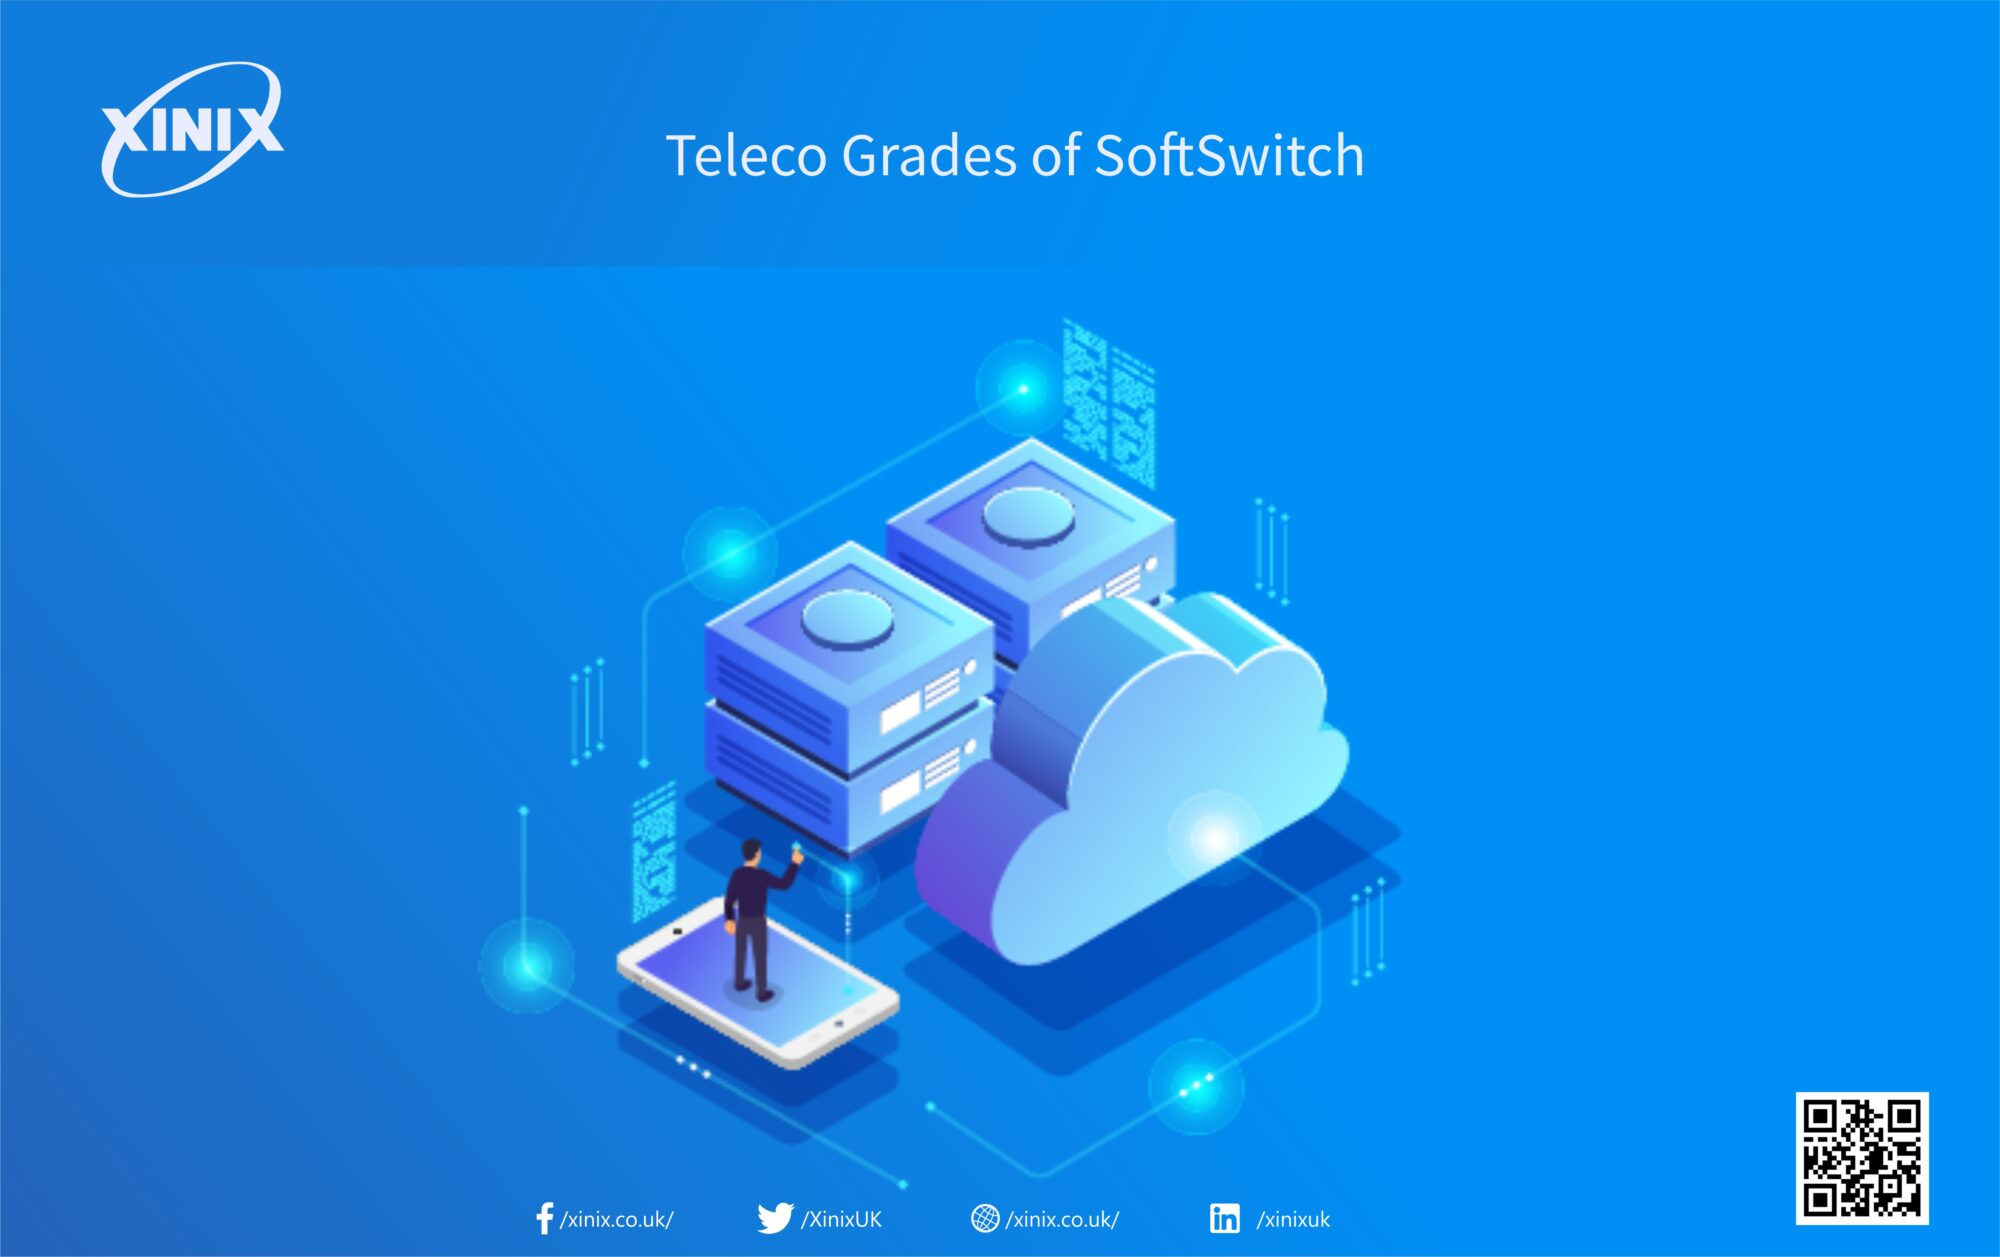 Teleco Grades of SoftSwitch